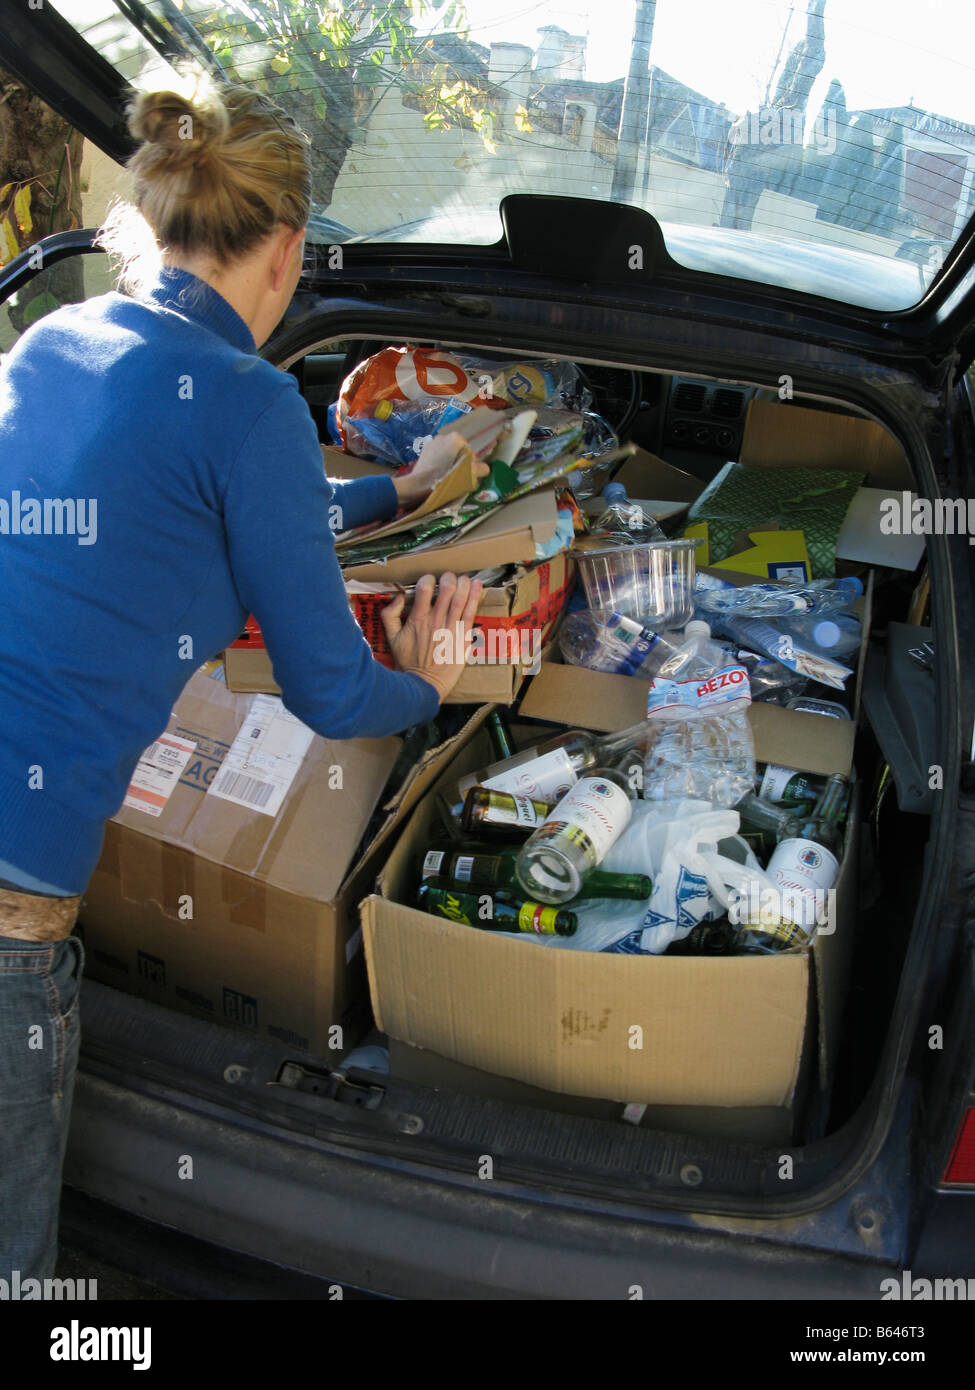 Woman filling car trunk with recyclable rubish - Stock Image